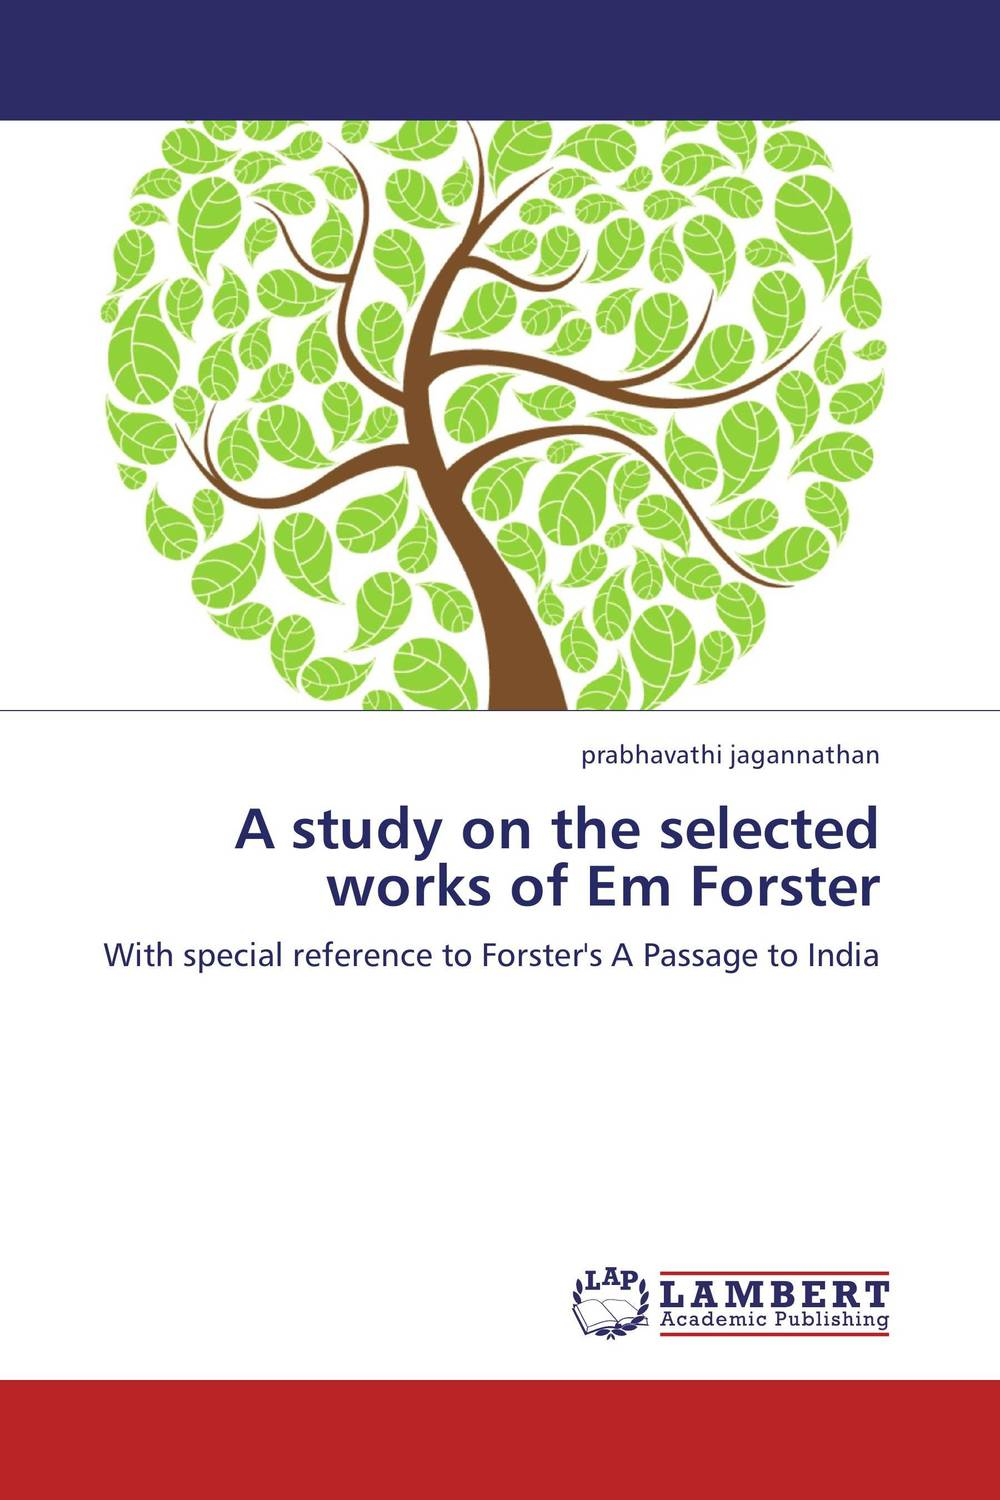 A study on the selected works of Em Forster a stylistic study of the language of selected greeting cards